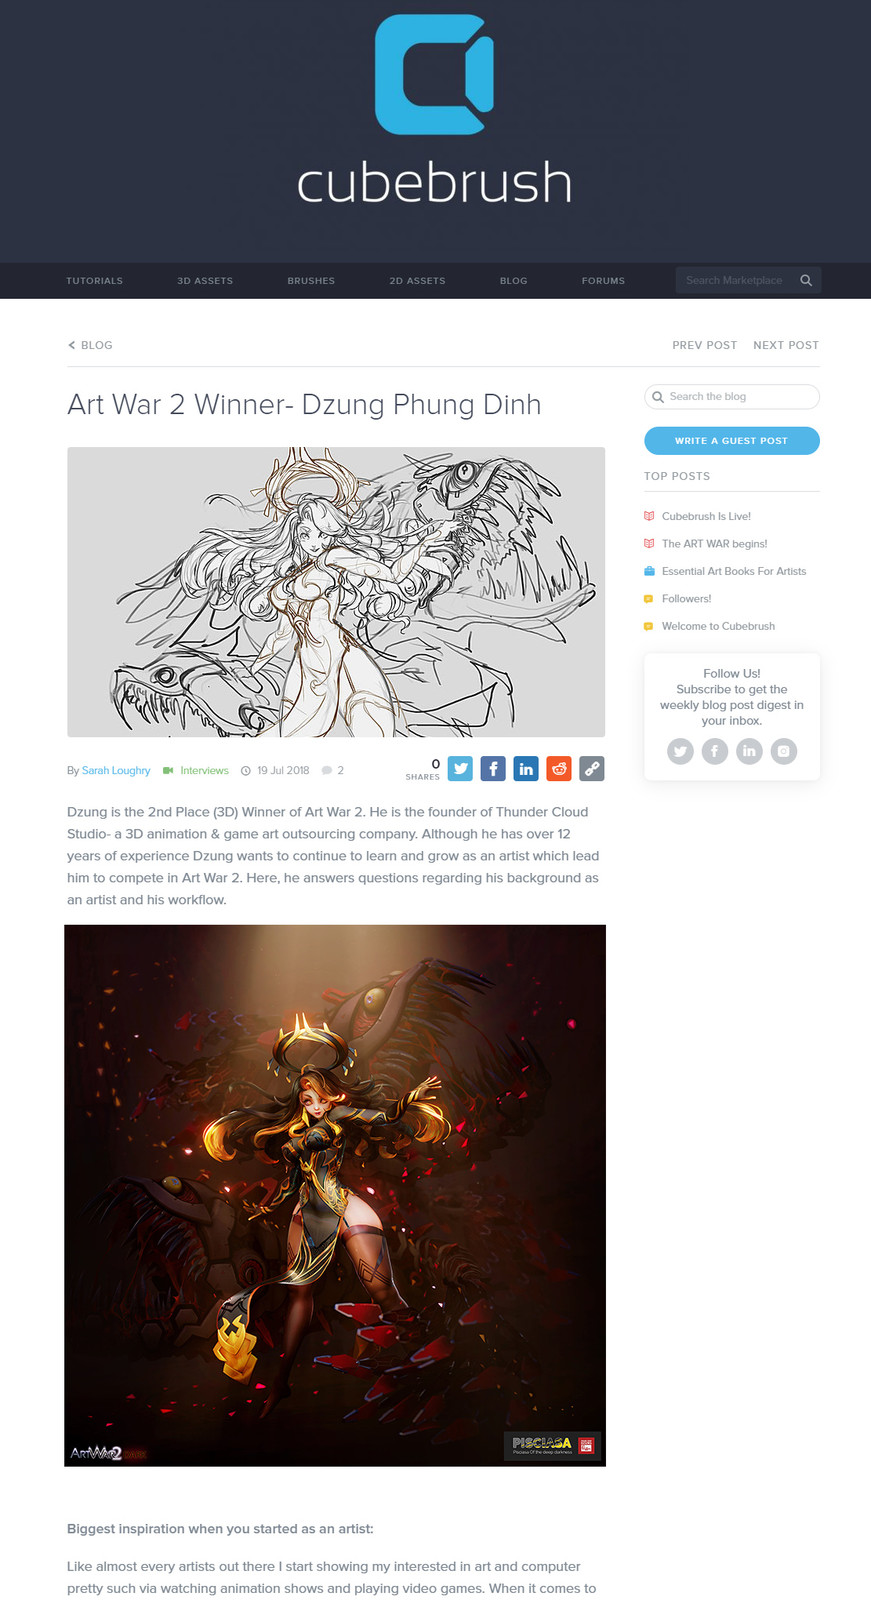 https://cubebrush.co/blog/art-war-2-winner--dzung-phung-dinh